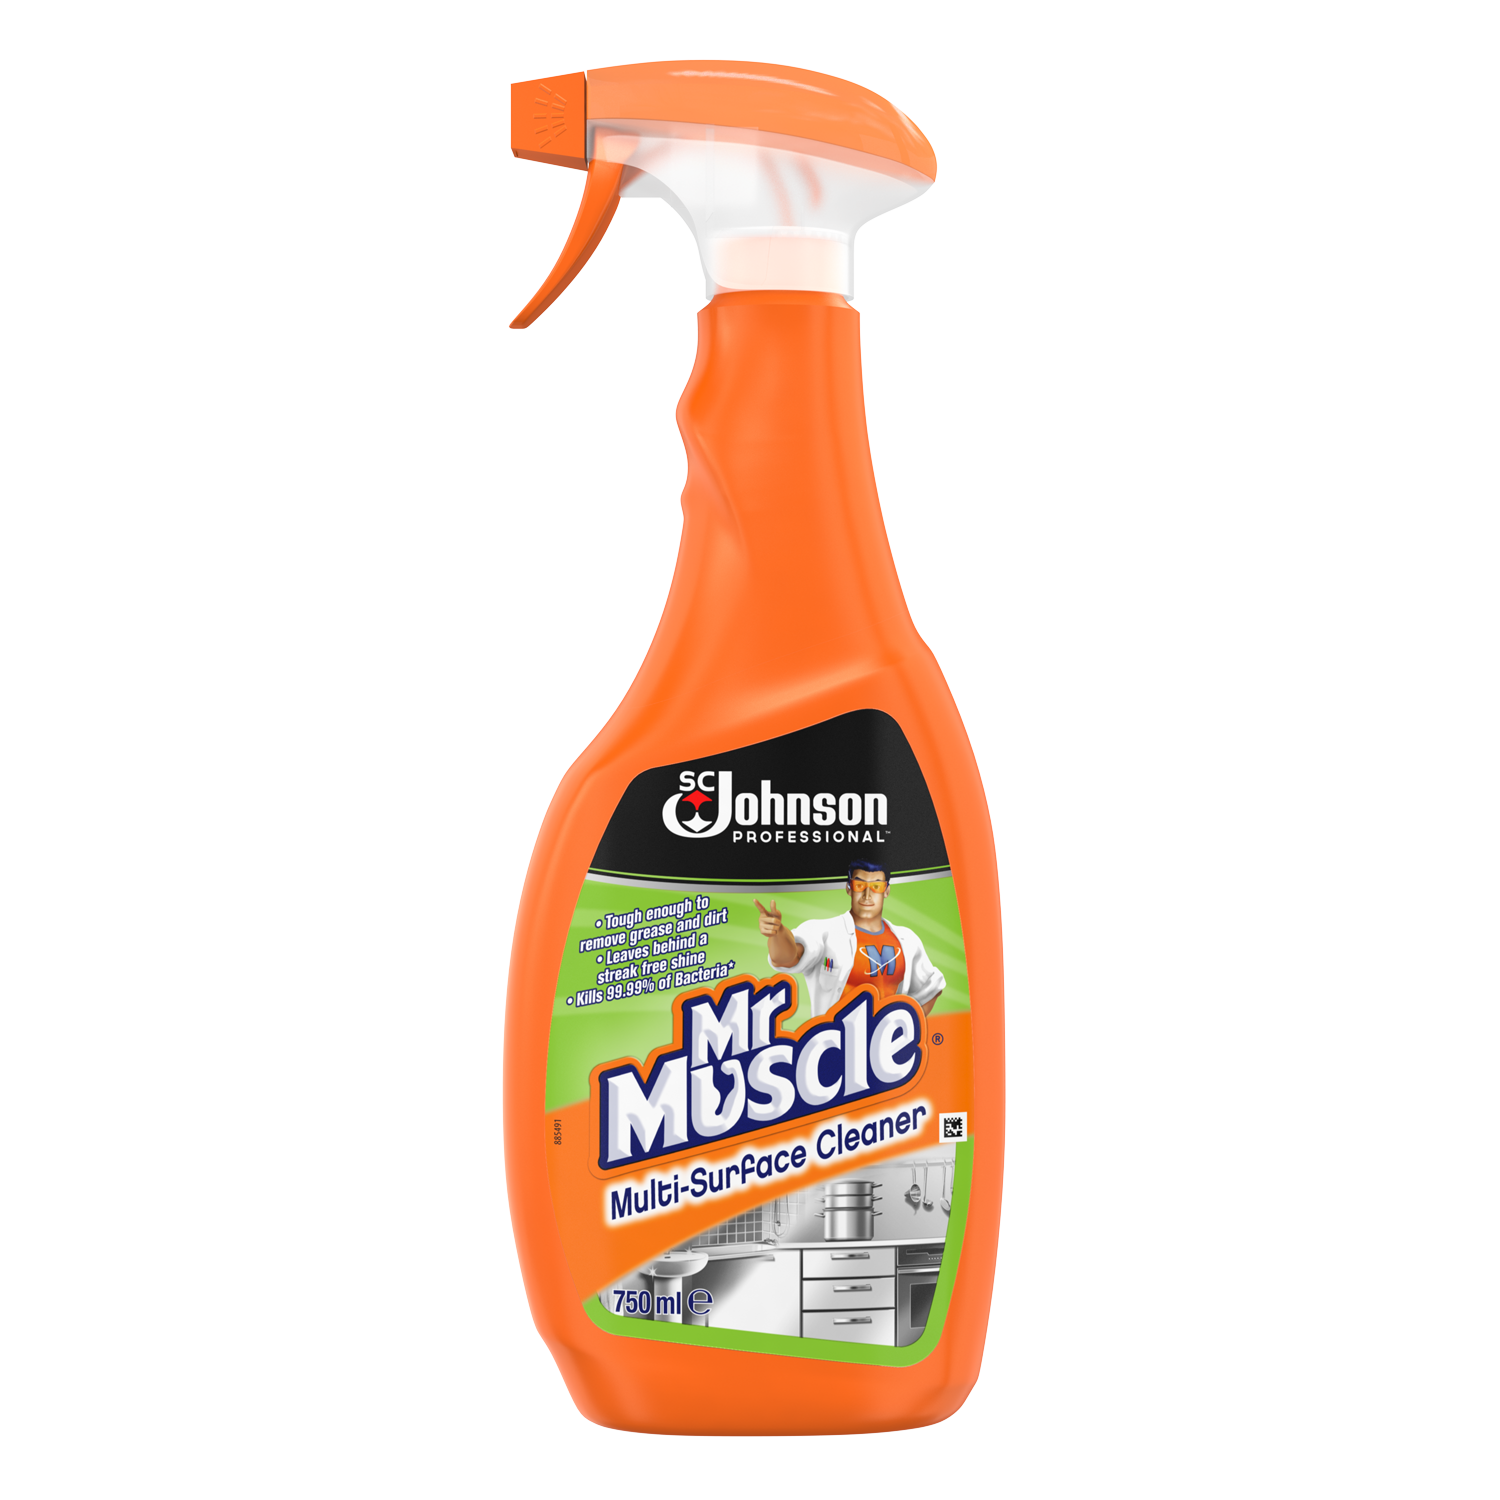 scjp-mr-muscle-multi-surface-cleaner-670614